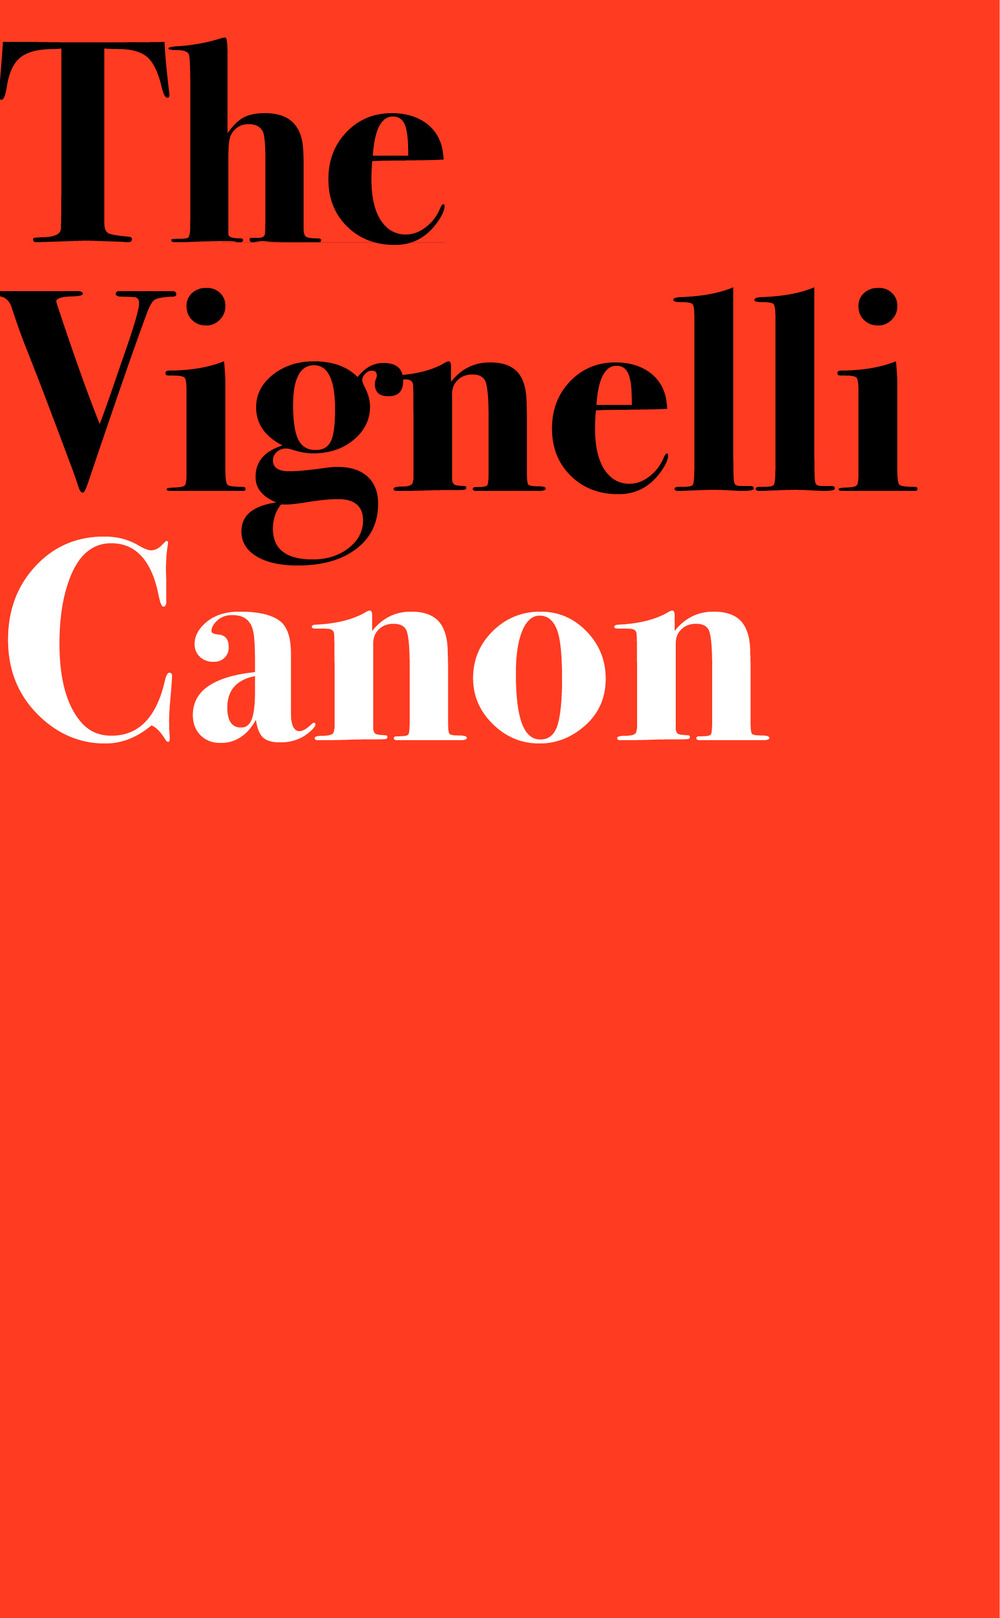 Vignelli_layouts.jpg